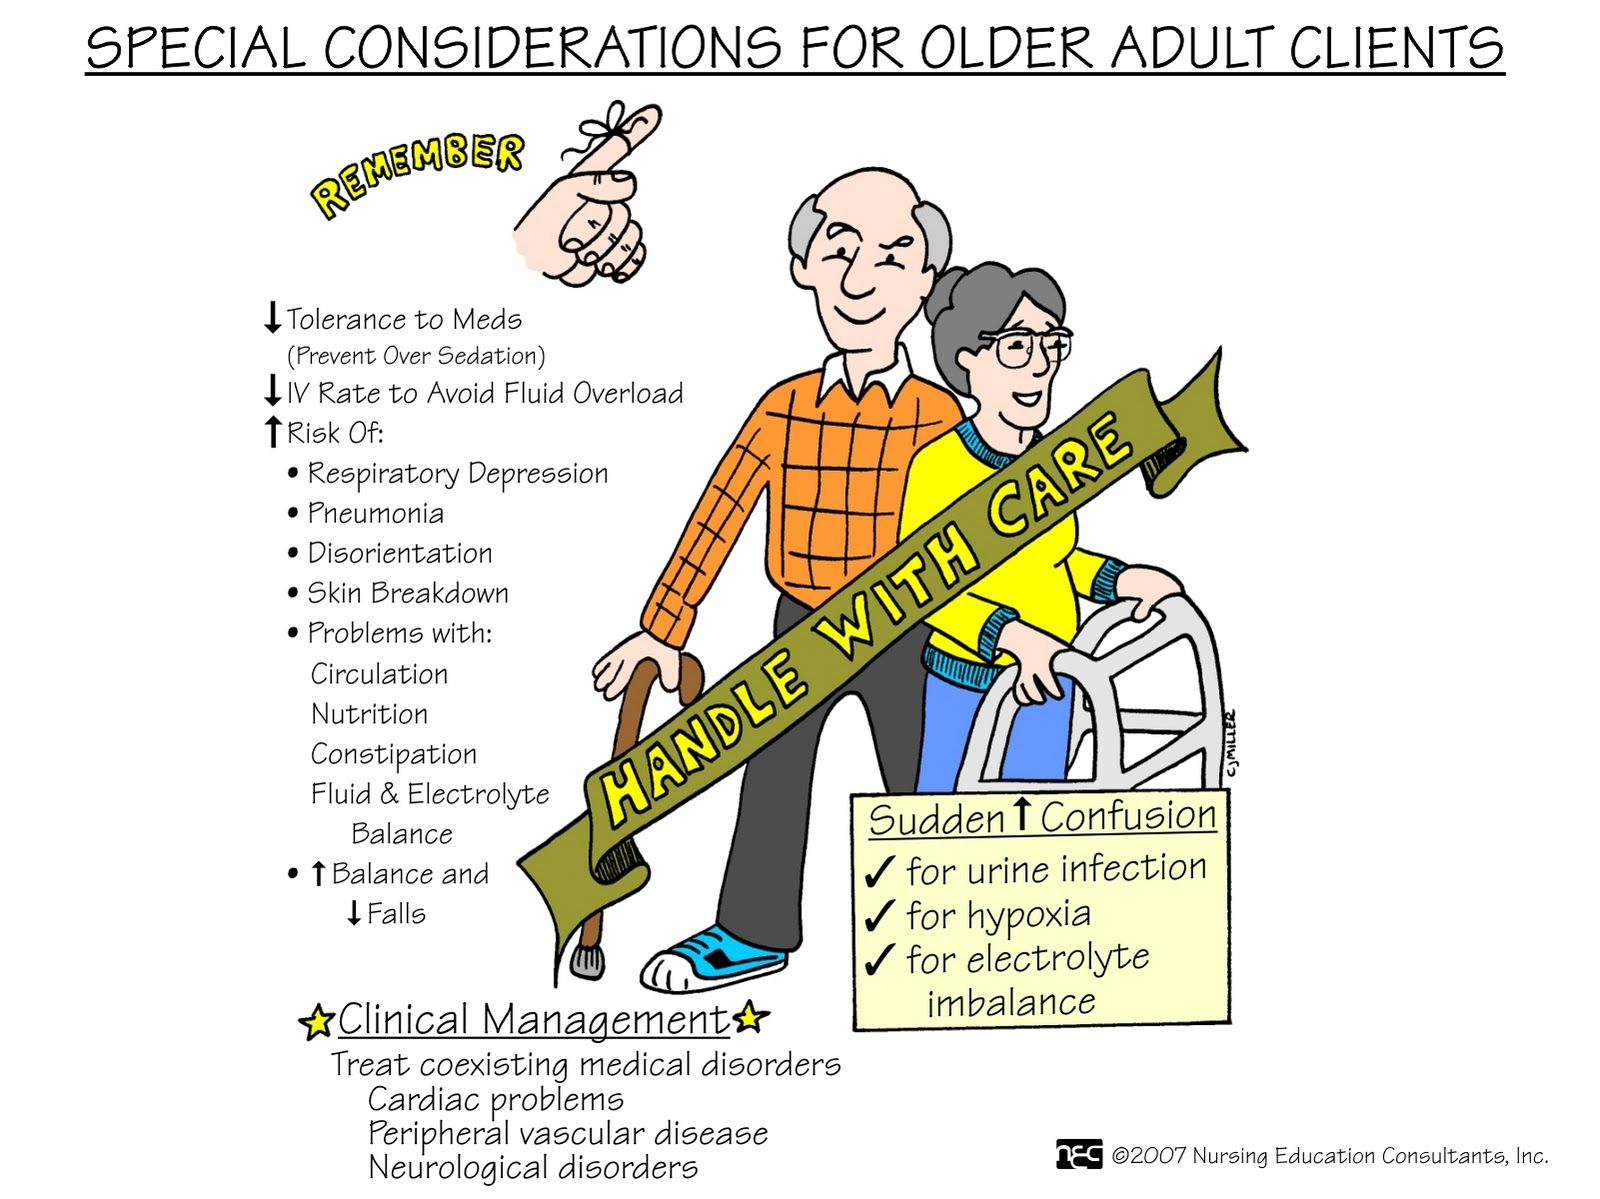 Special considerations for older adult clients